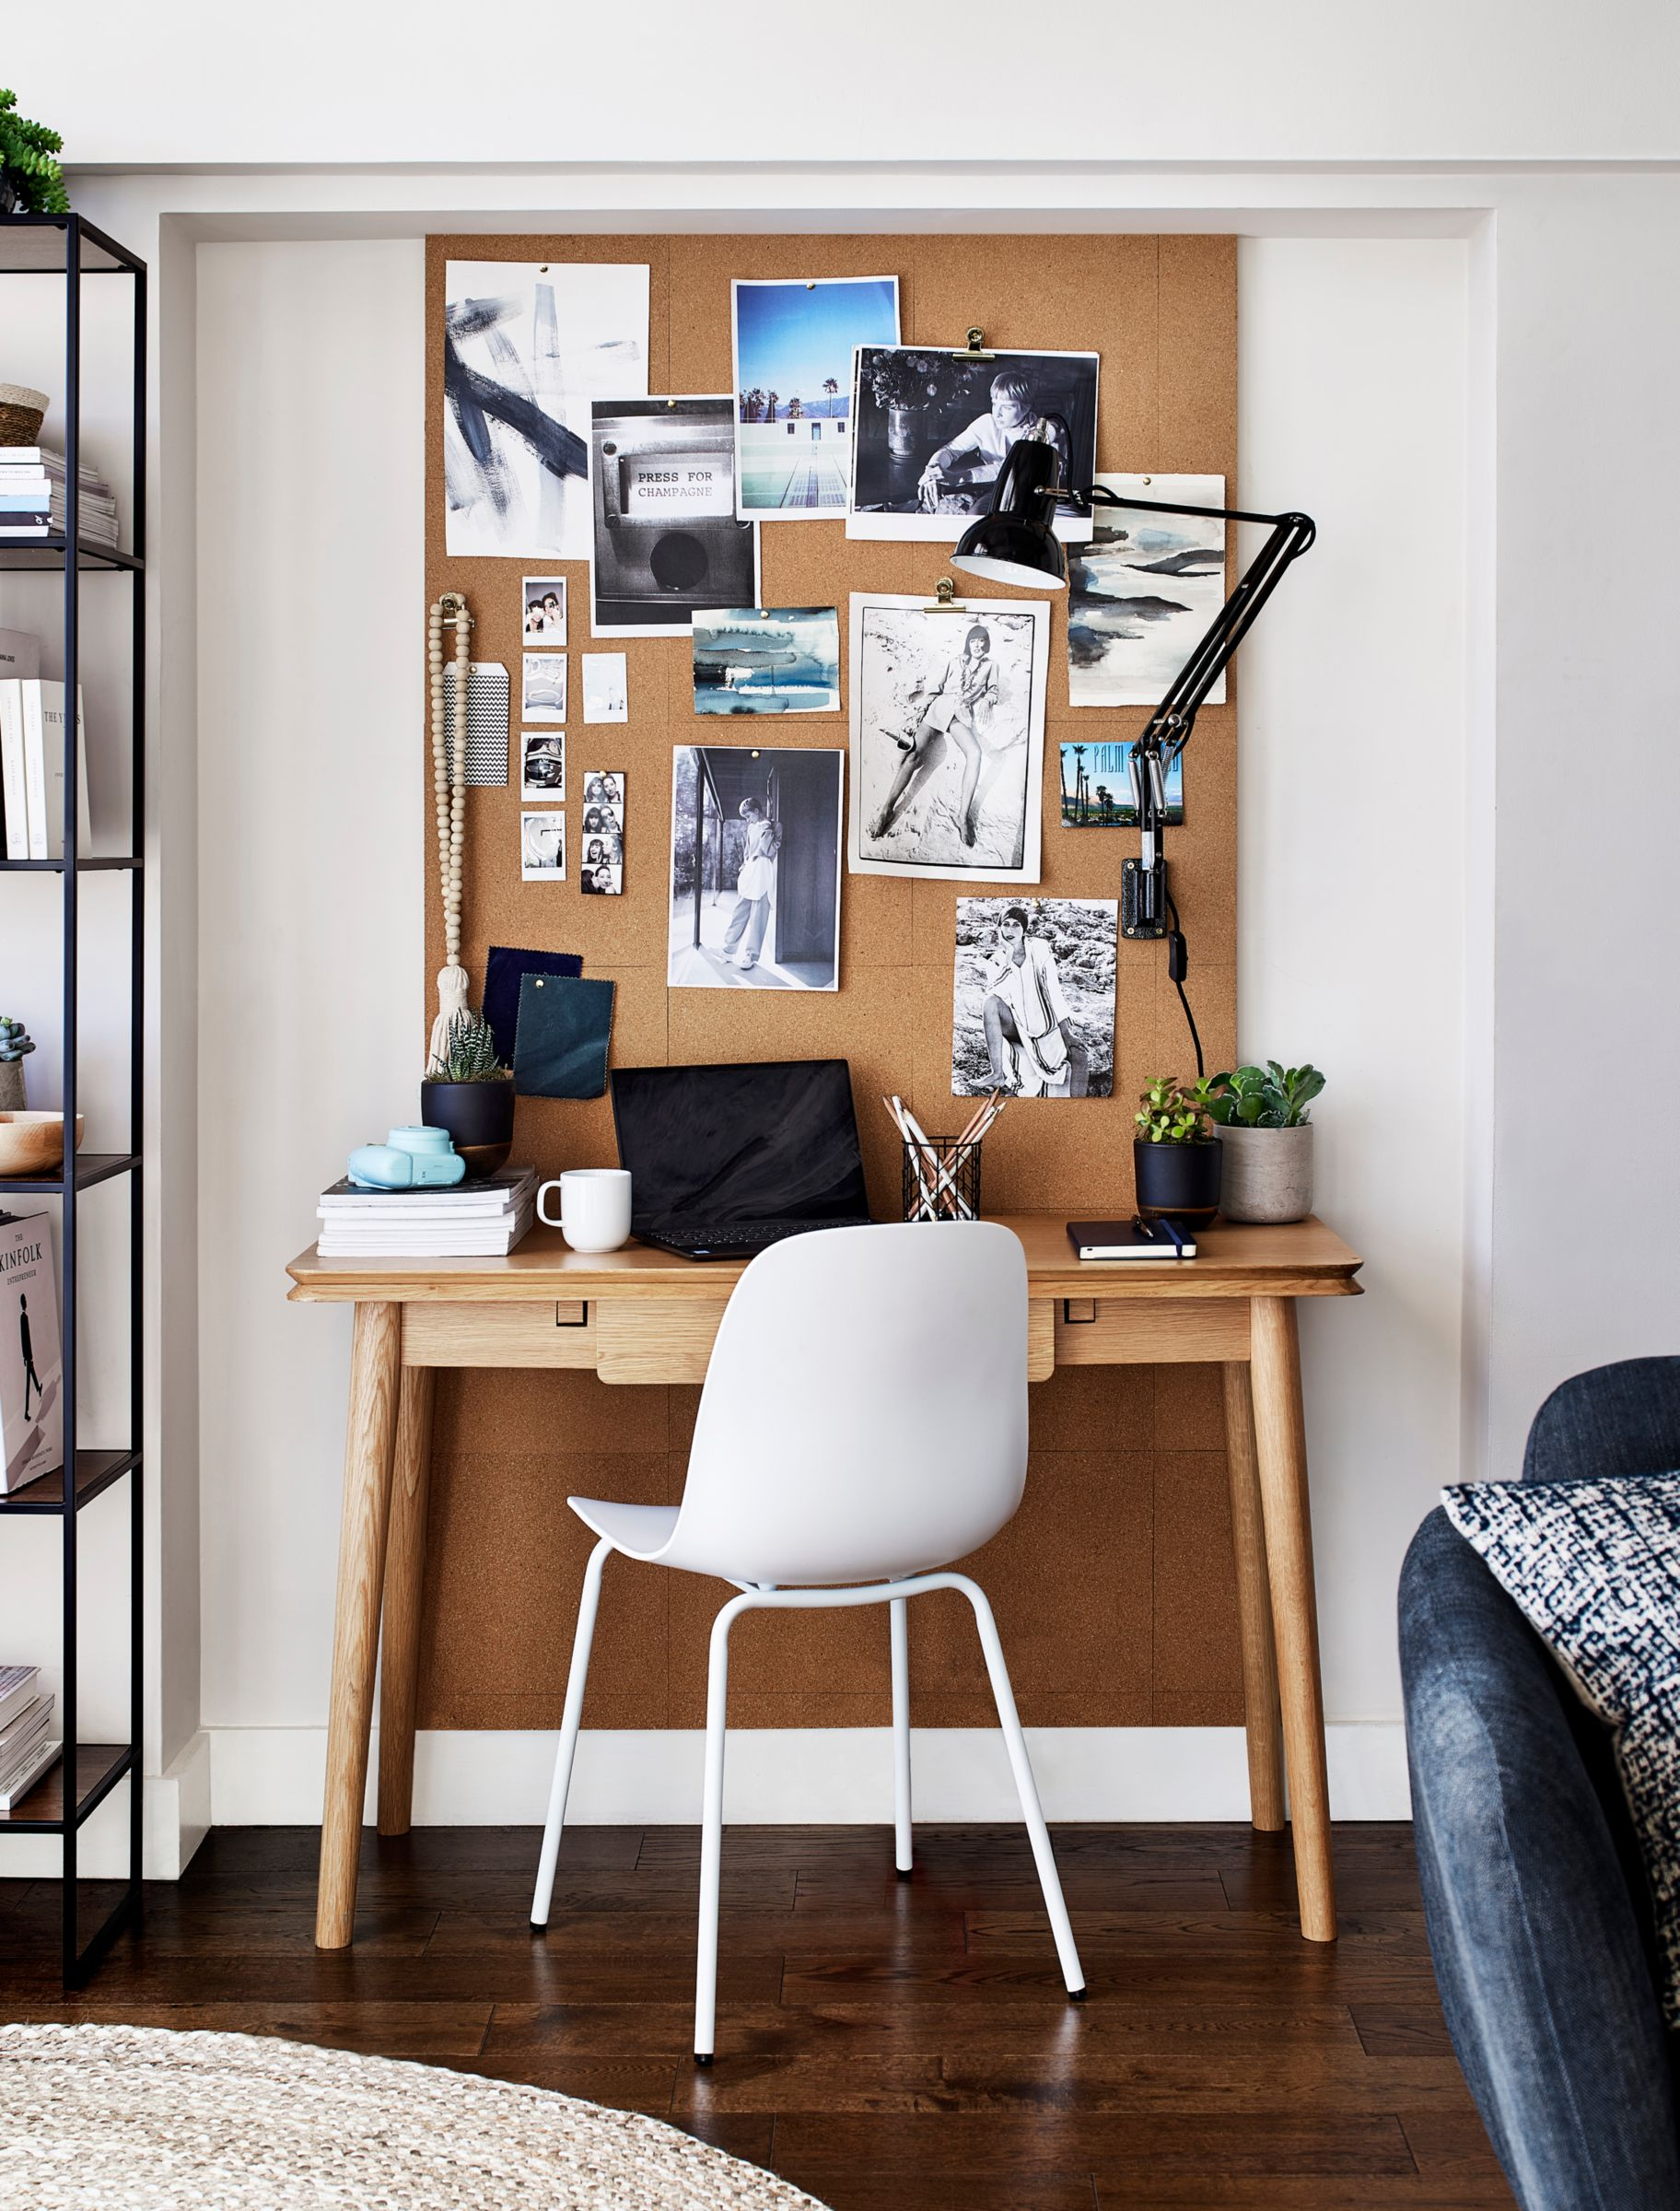 A desk in a home office